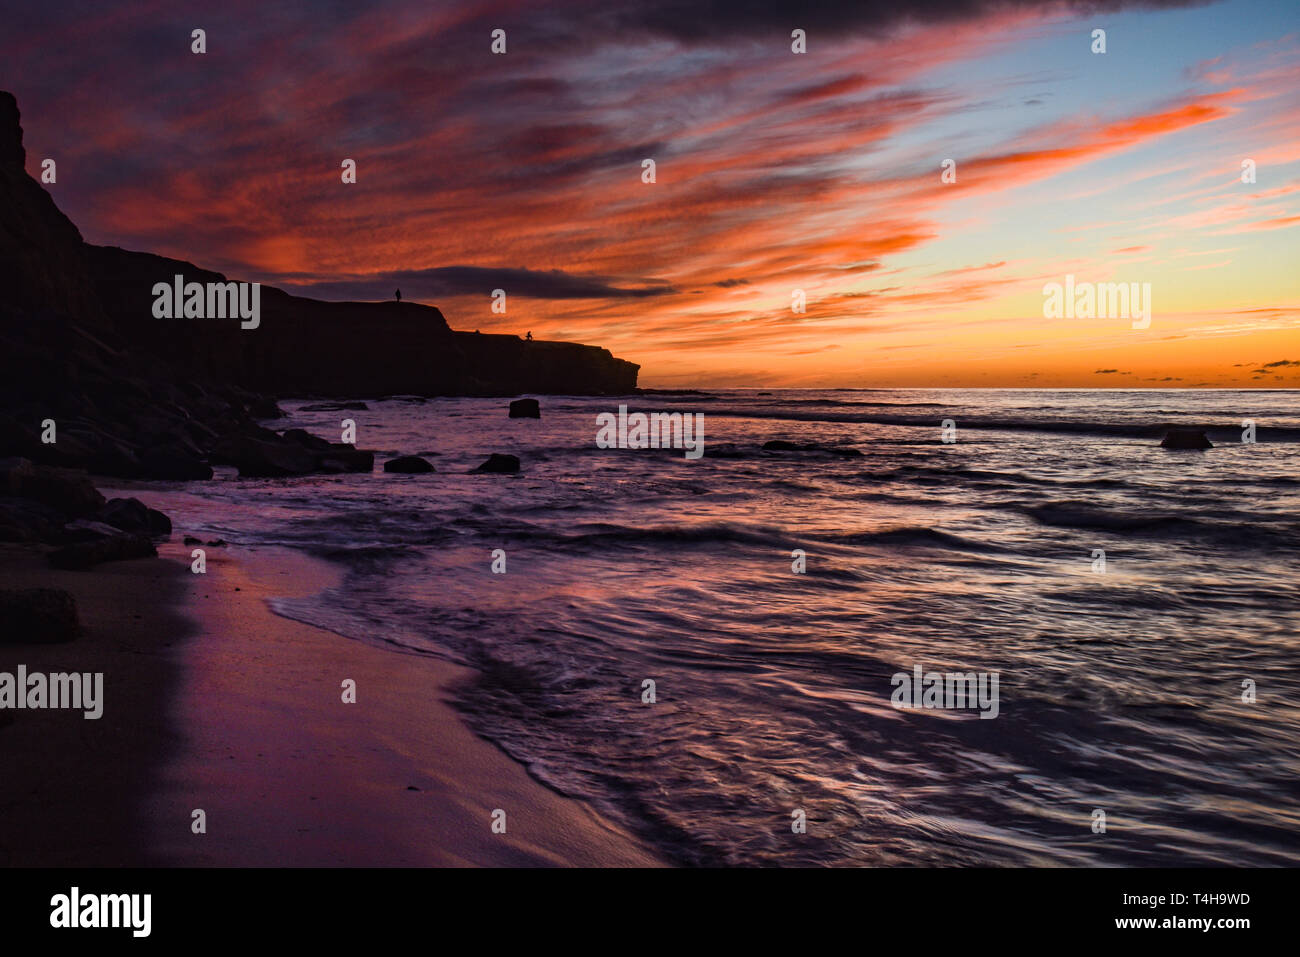 Spectacular, peaceful sunset at low tide, waves breaking over rocks, bright sky reflecting into water, Sunset Cliffs Natural Park, San Diego, CA, USA Stock Photo